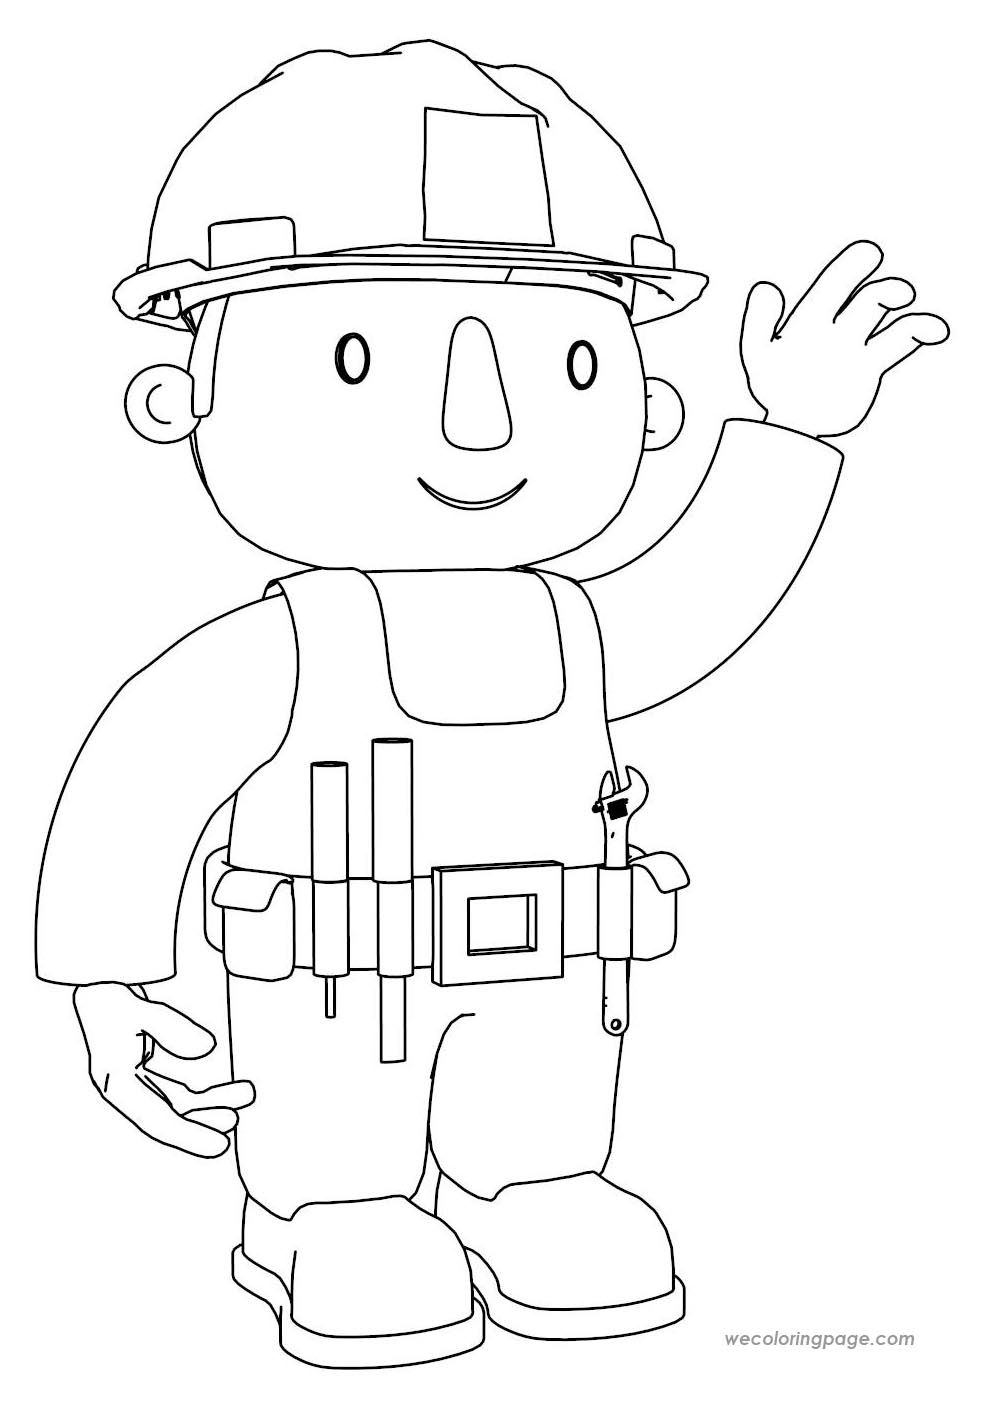 Bob The Builder Coloring Pages | Pinterest | Bobs